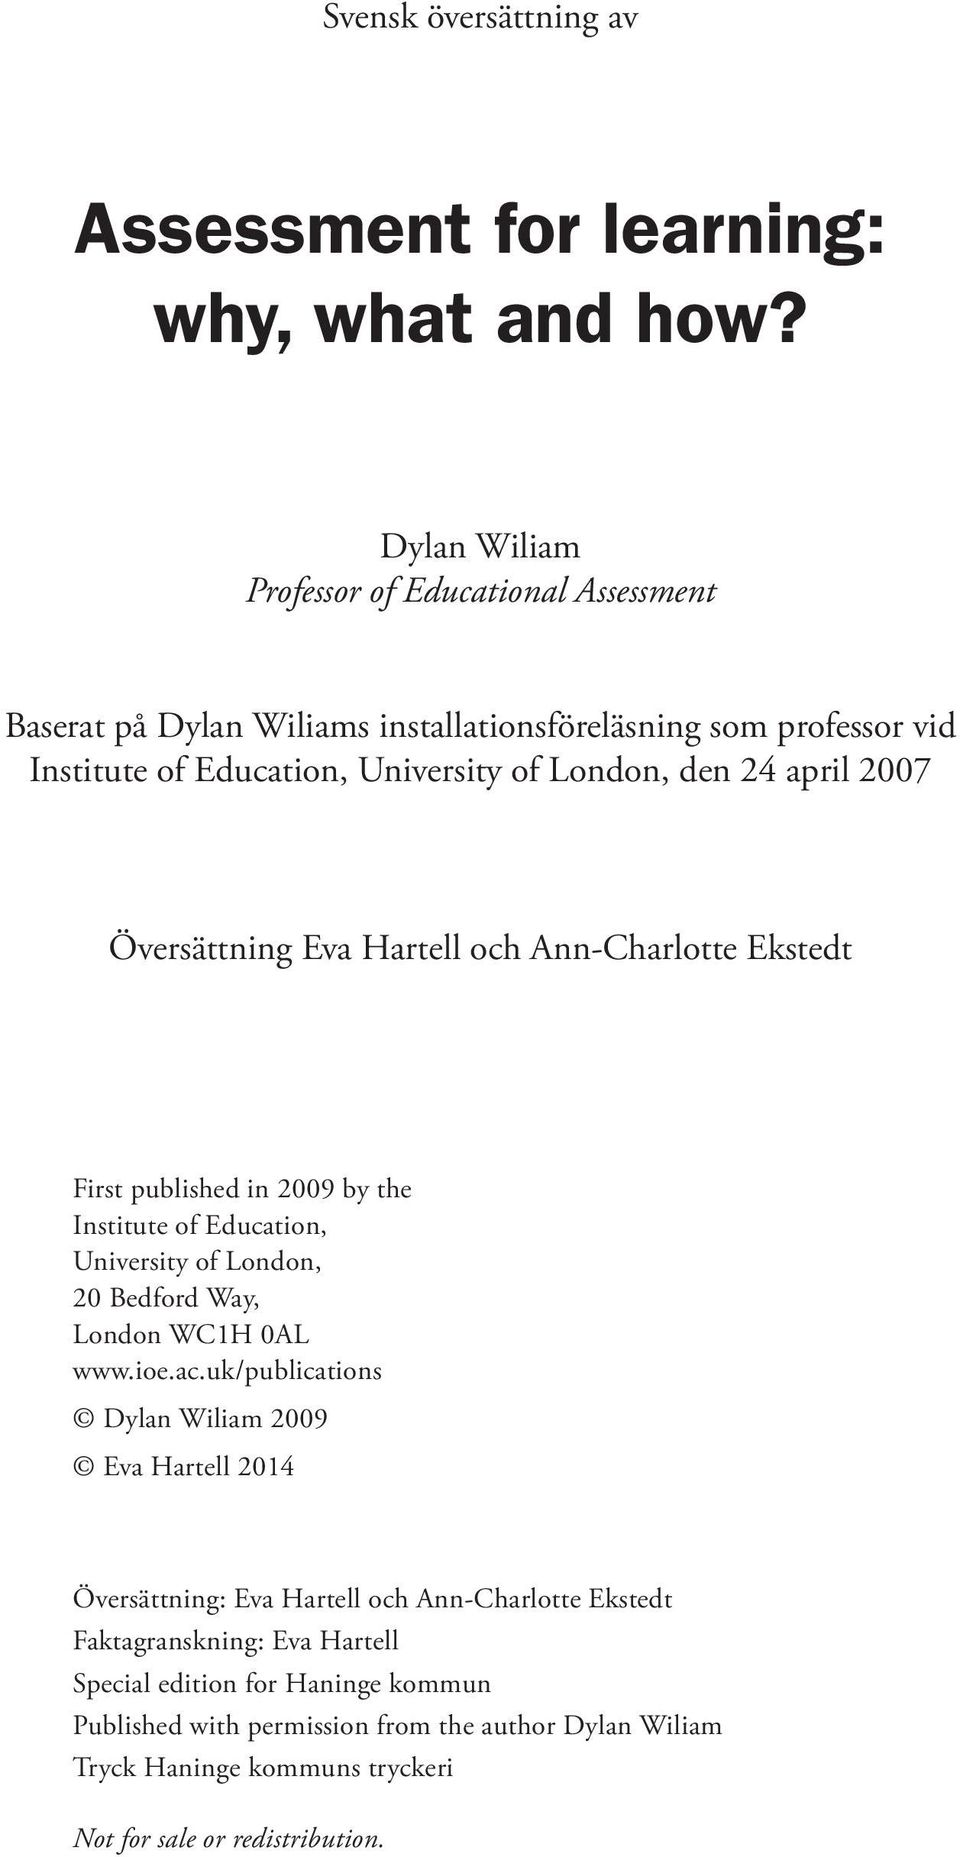 2007 Översättning Eva Hartell och Ann-Charlotte Ekstedt First published in 2009 by the Institute of Education, University of London, 20 Bedford Way, London WC1H 0AL www.ioe.ac.